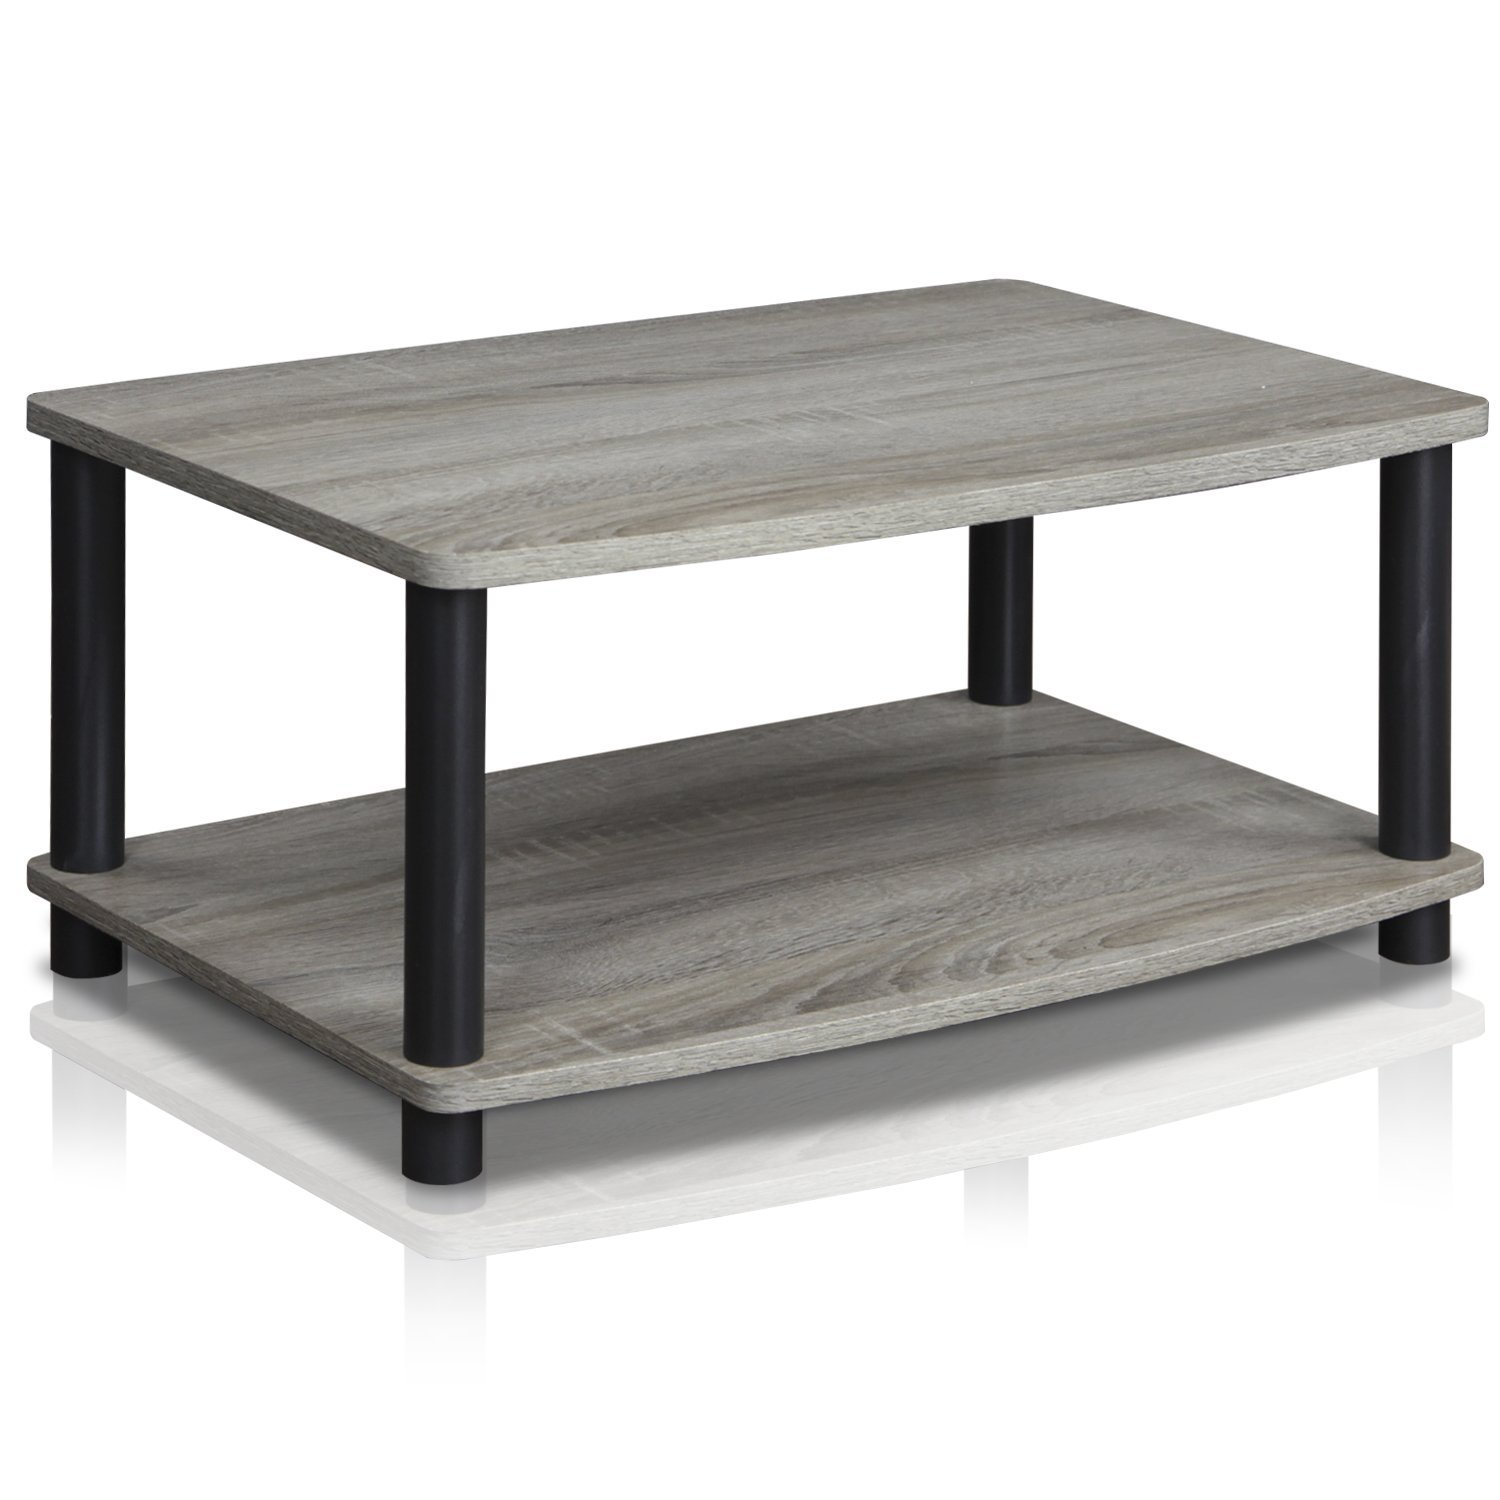 Small Modern Coffee Table Home Bedside Storage Table Living Room Furniture Grey Ebay